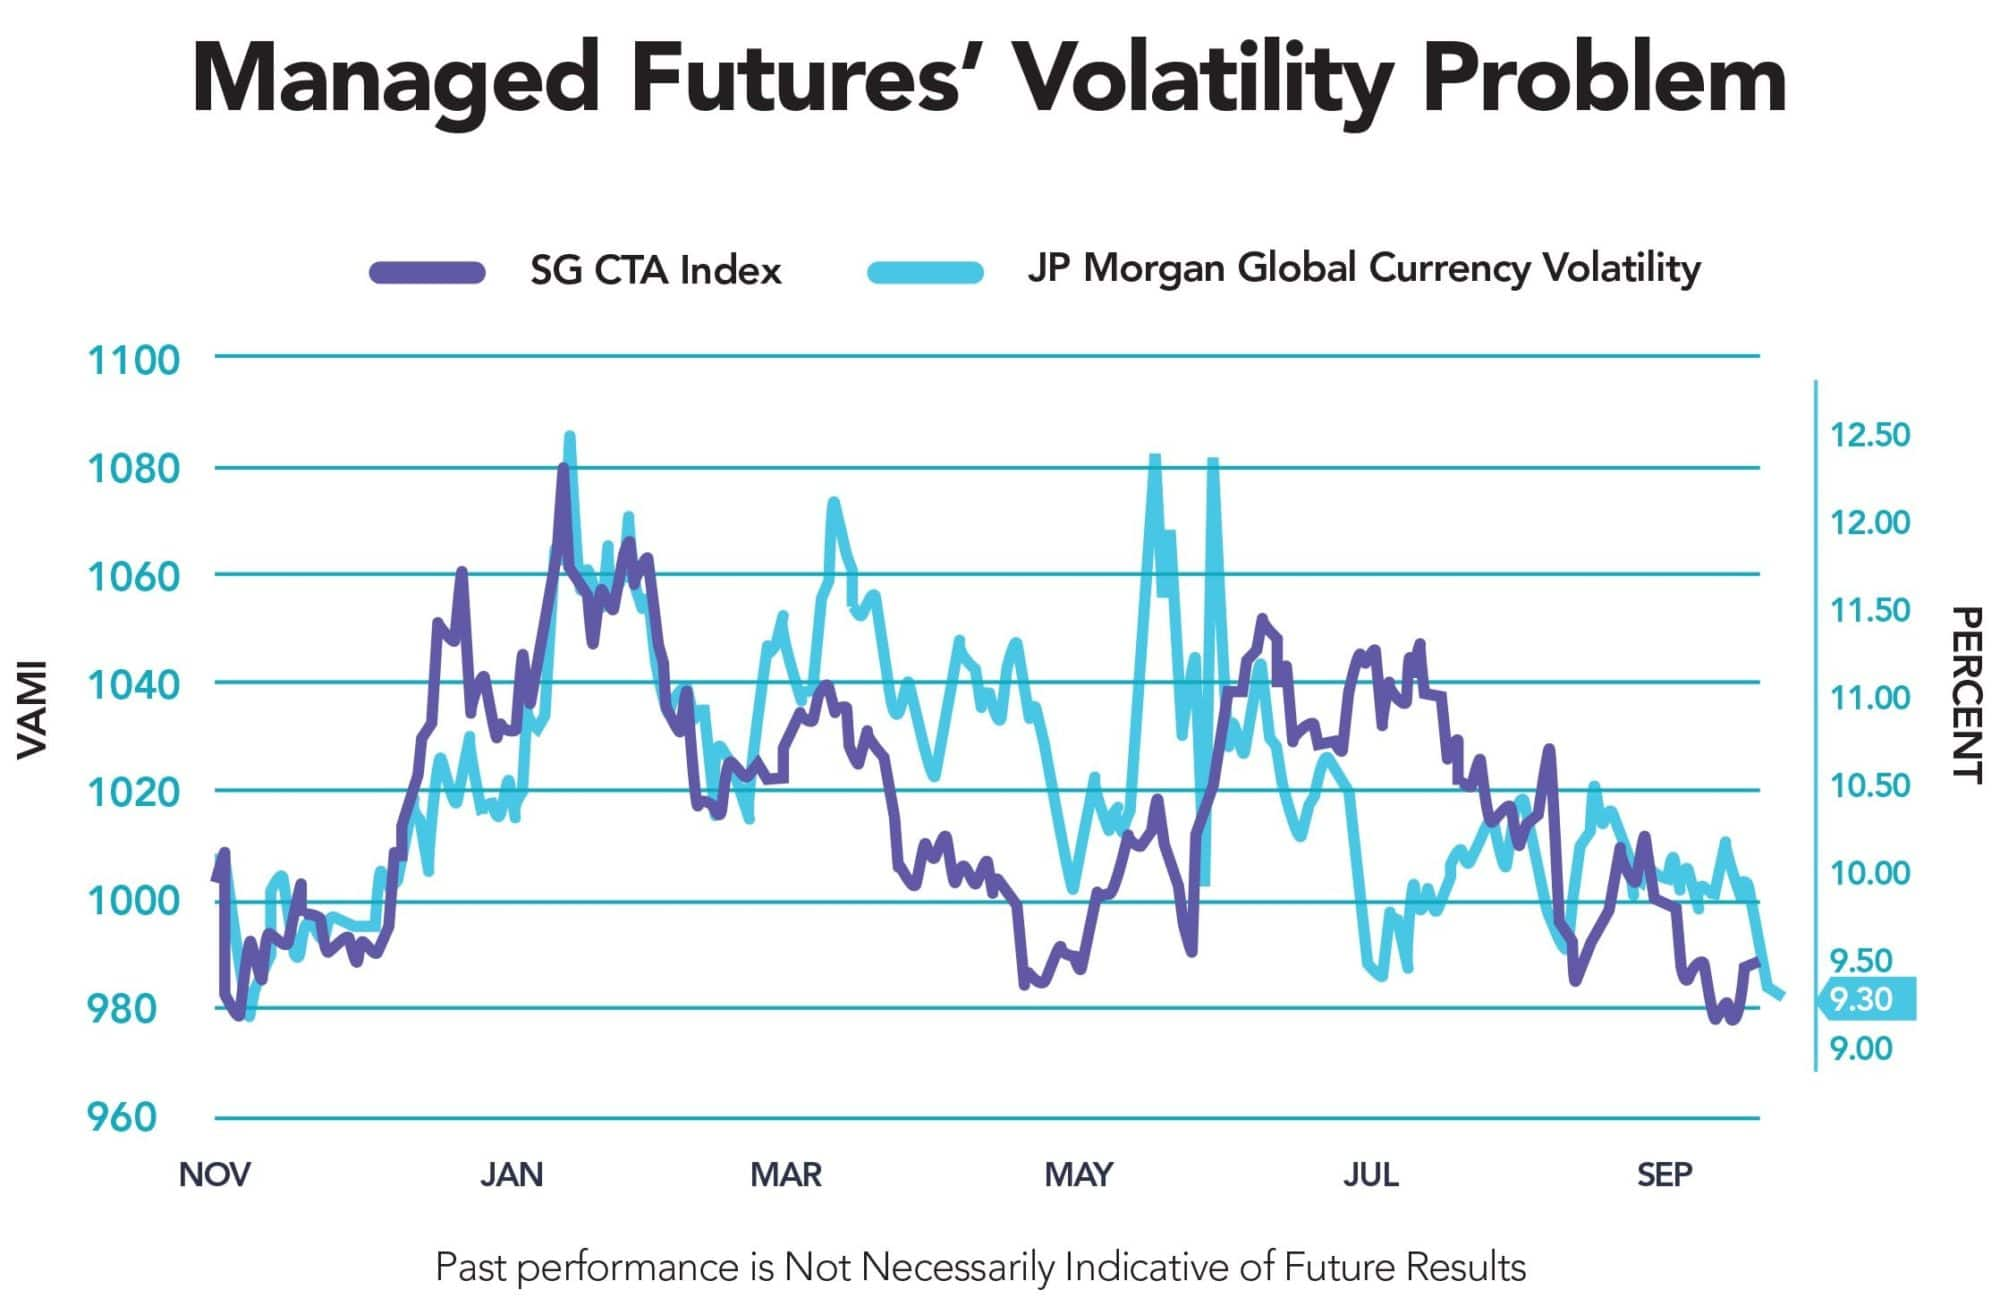 Managed Futures Global Currency Volatility